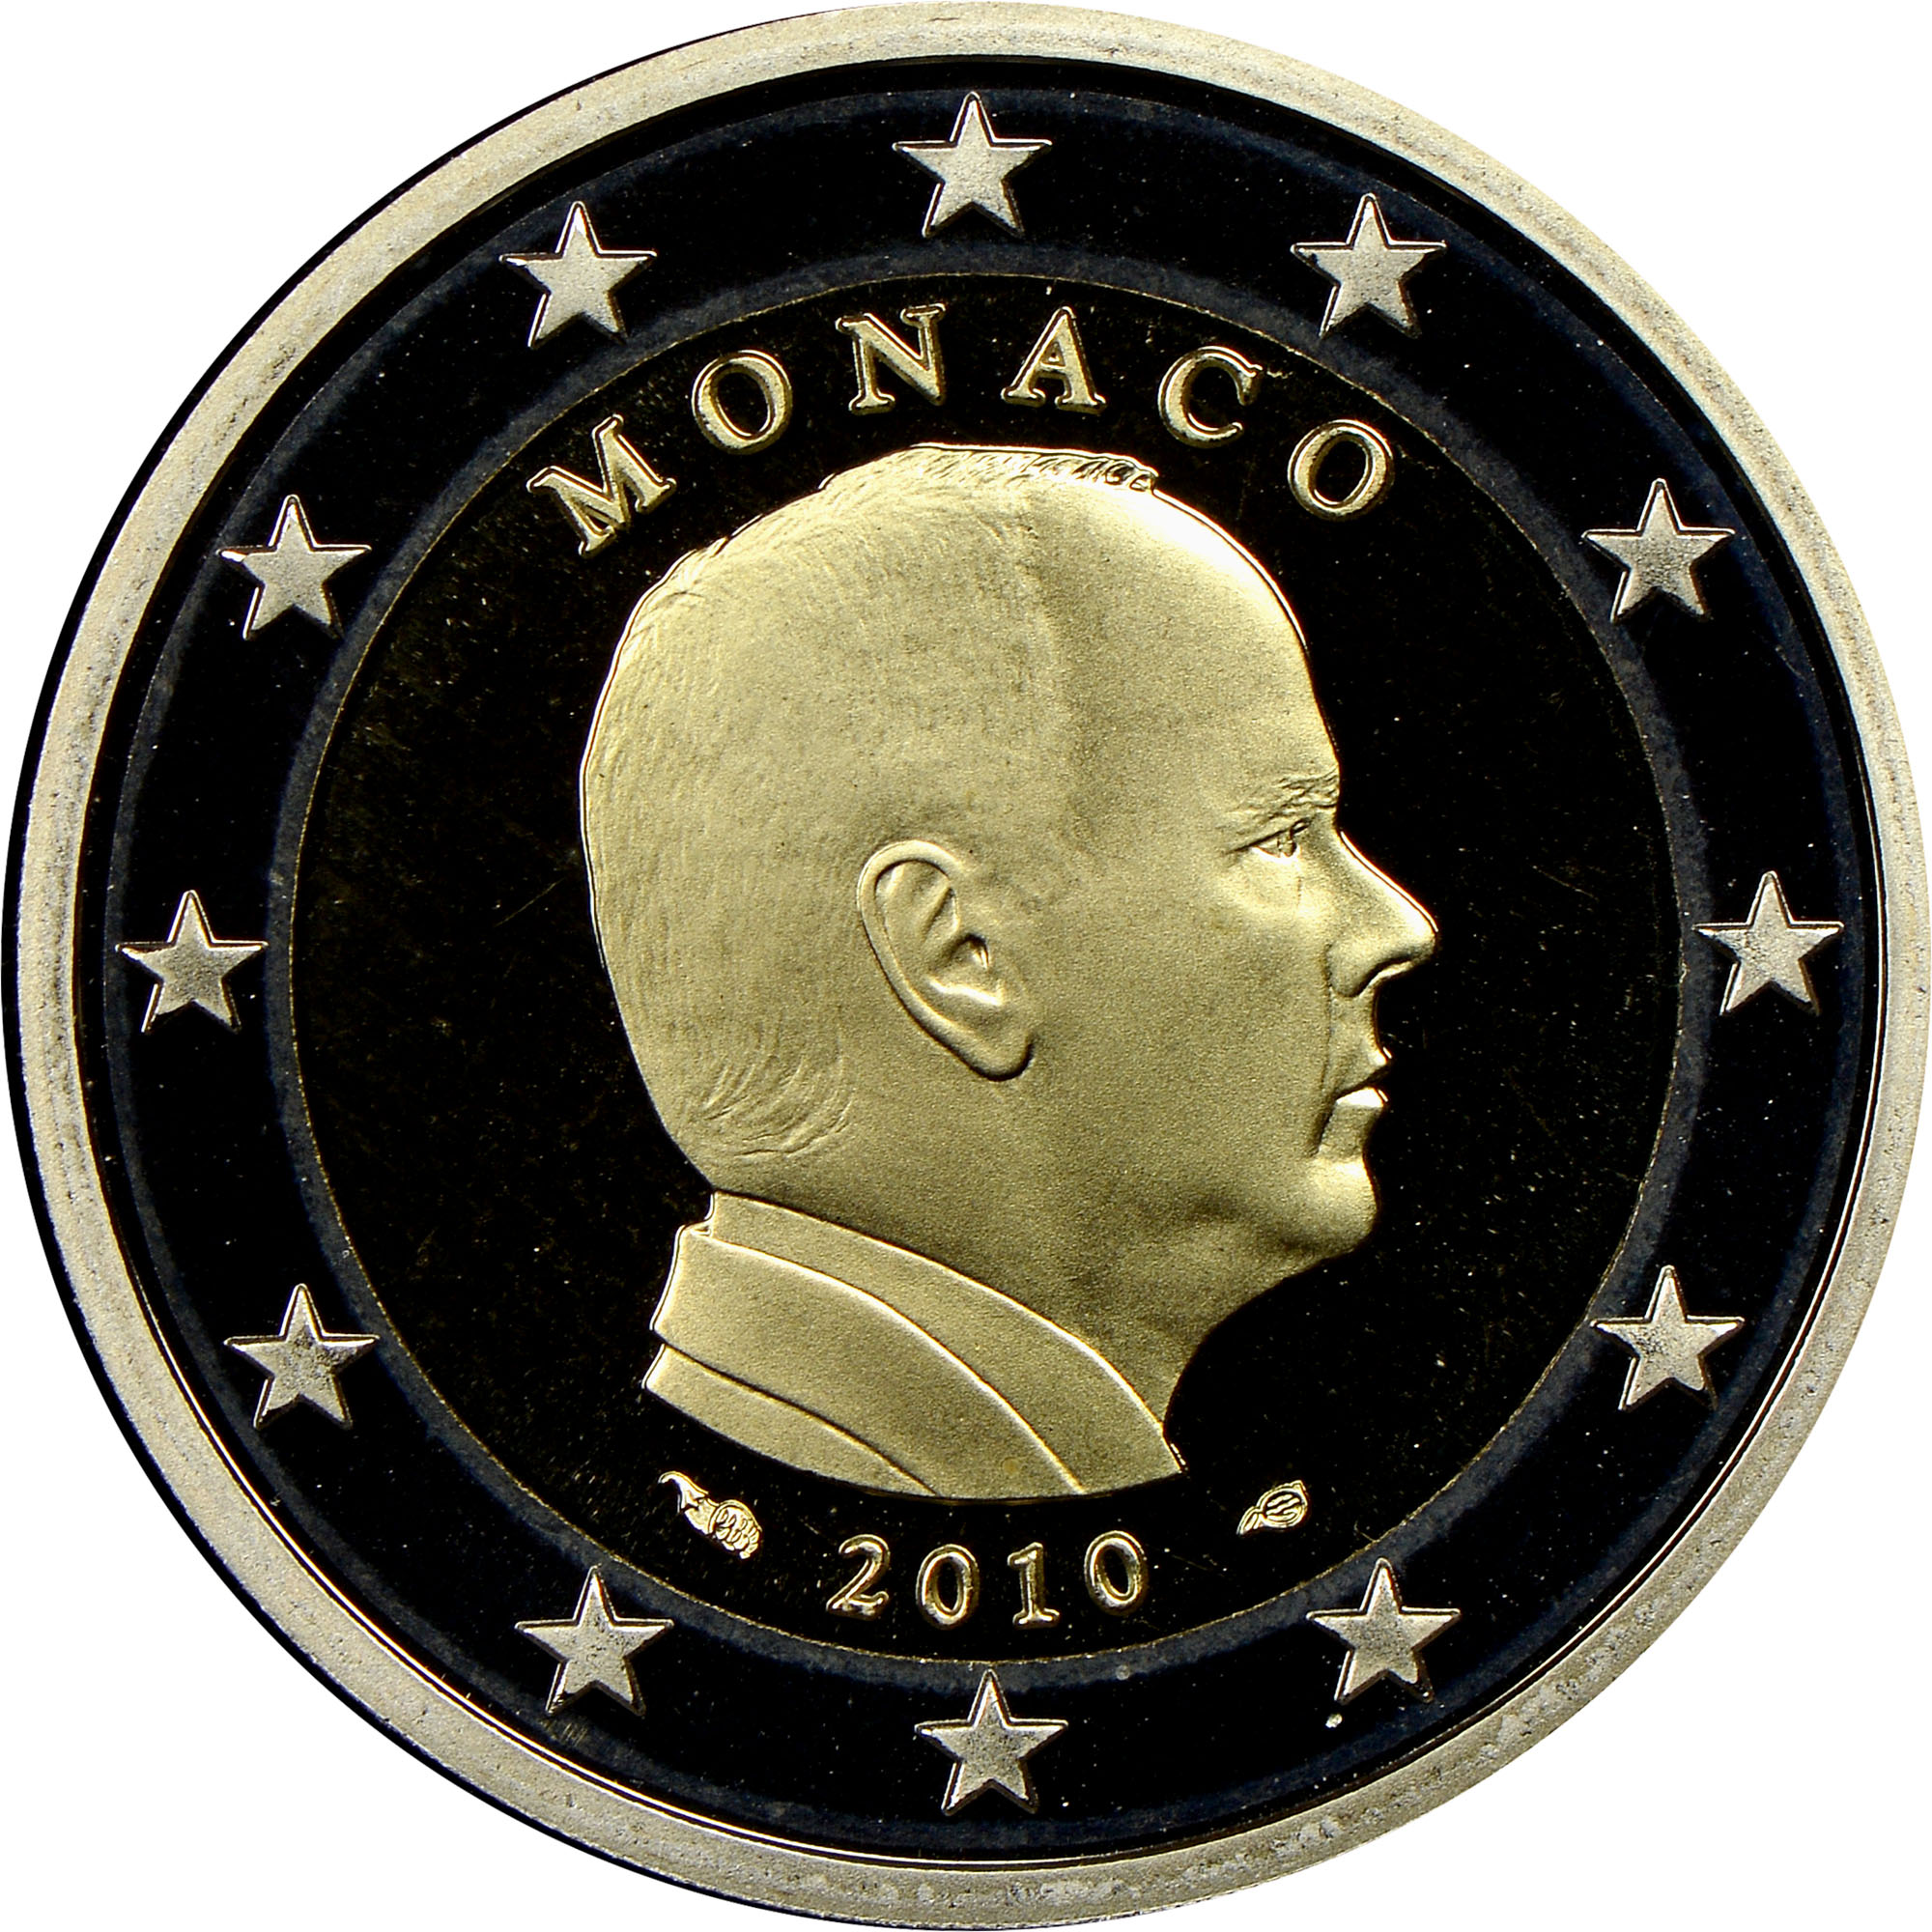 monaco 2 euro km 195 prices values ngc. Black Bedroom Furniture Sets. Home Design Ideas